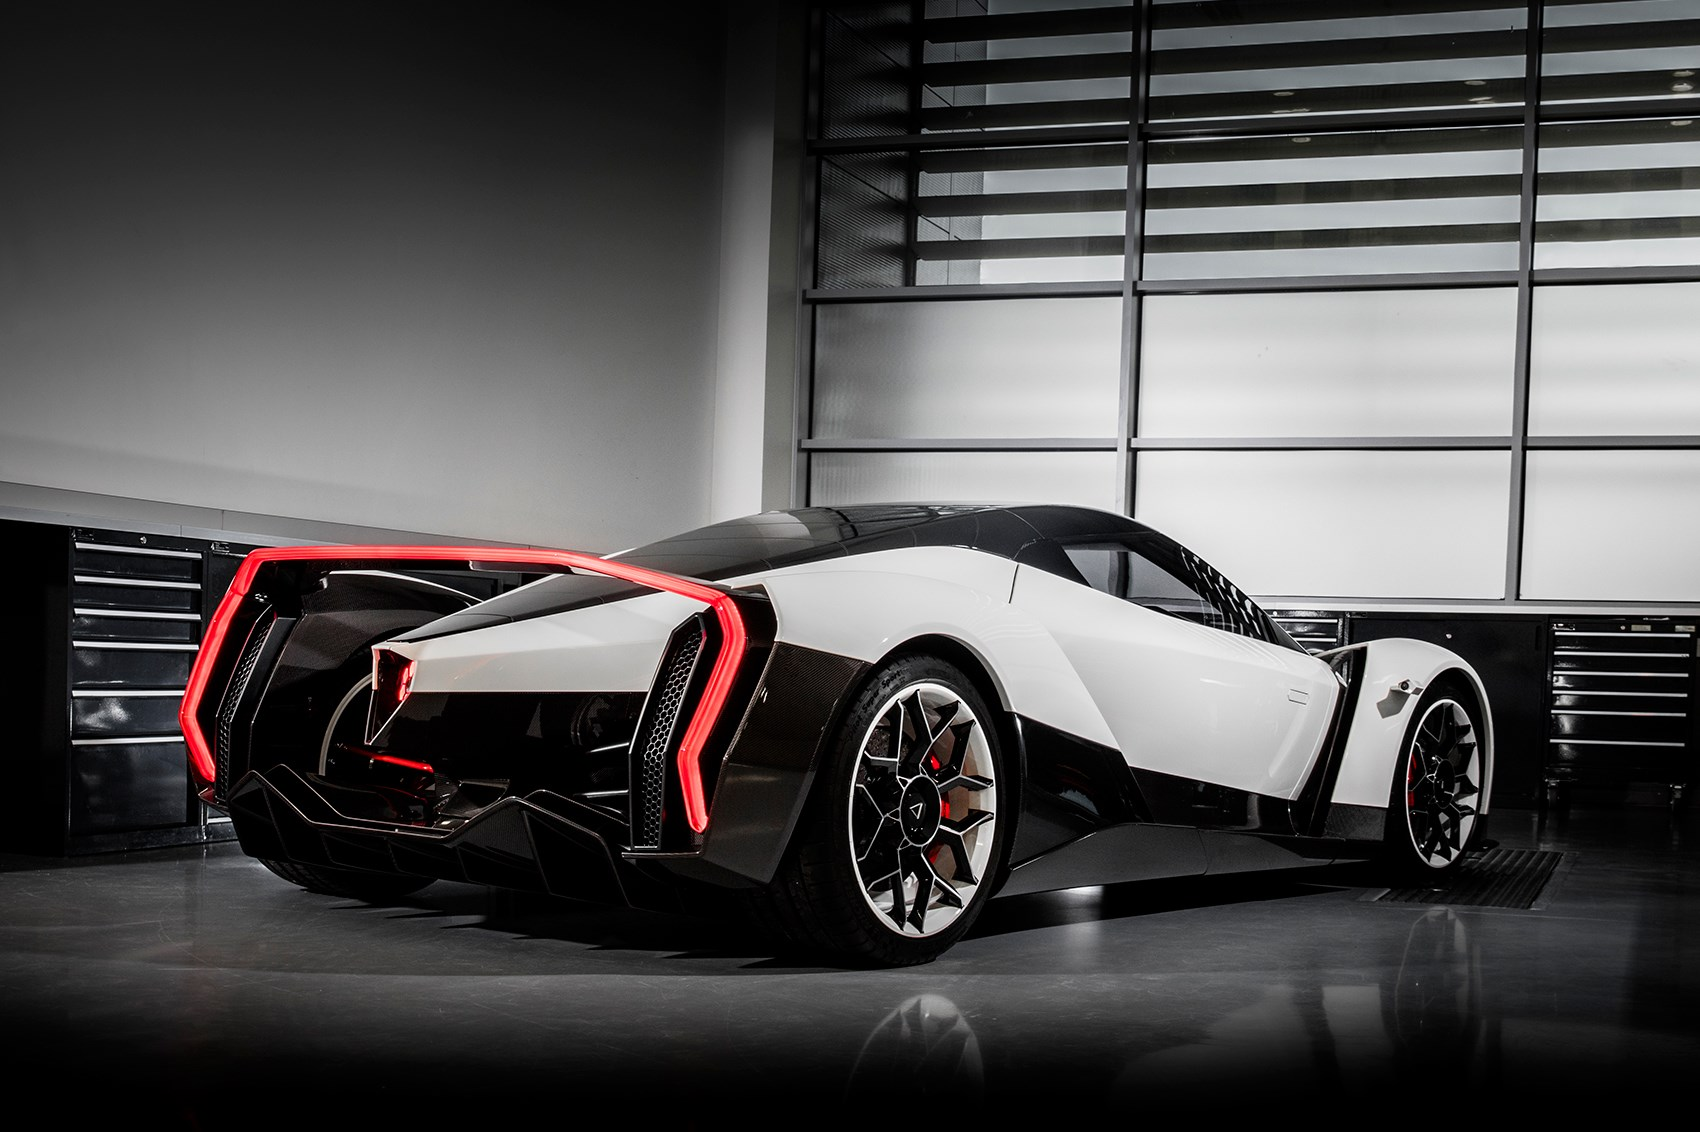 Vanda Dendrobium The 200mph Electric Hypercar From